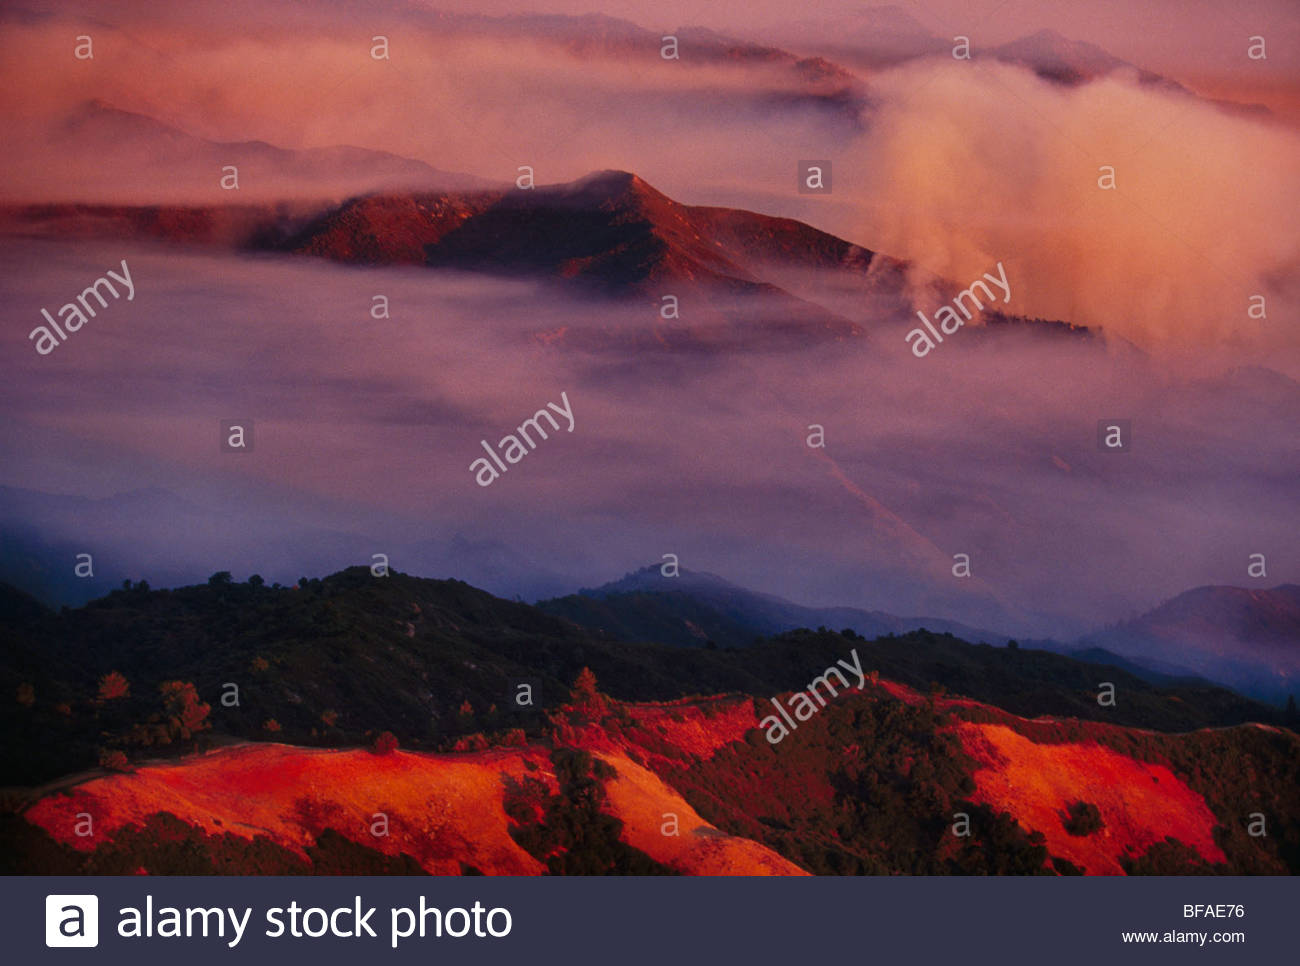 Smoke and fog mix during forest fire, Big Sur, California - Stock Image